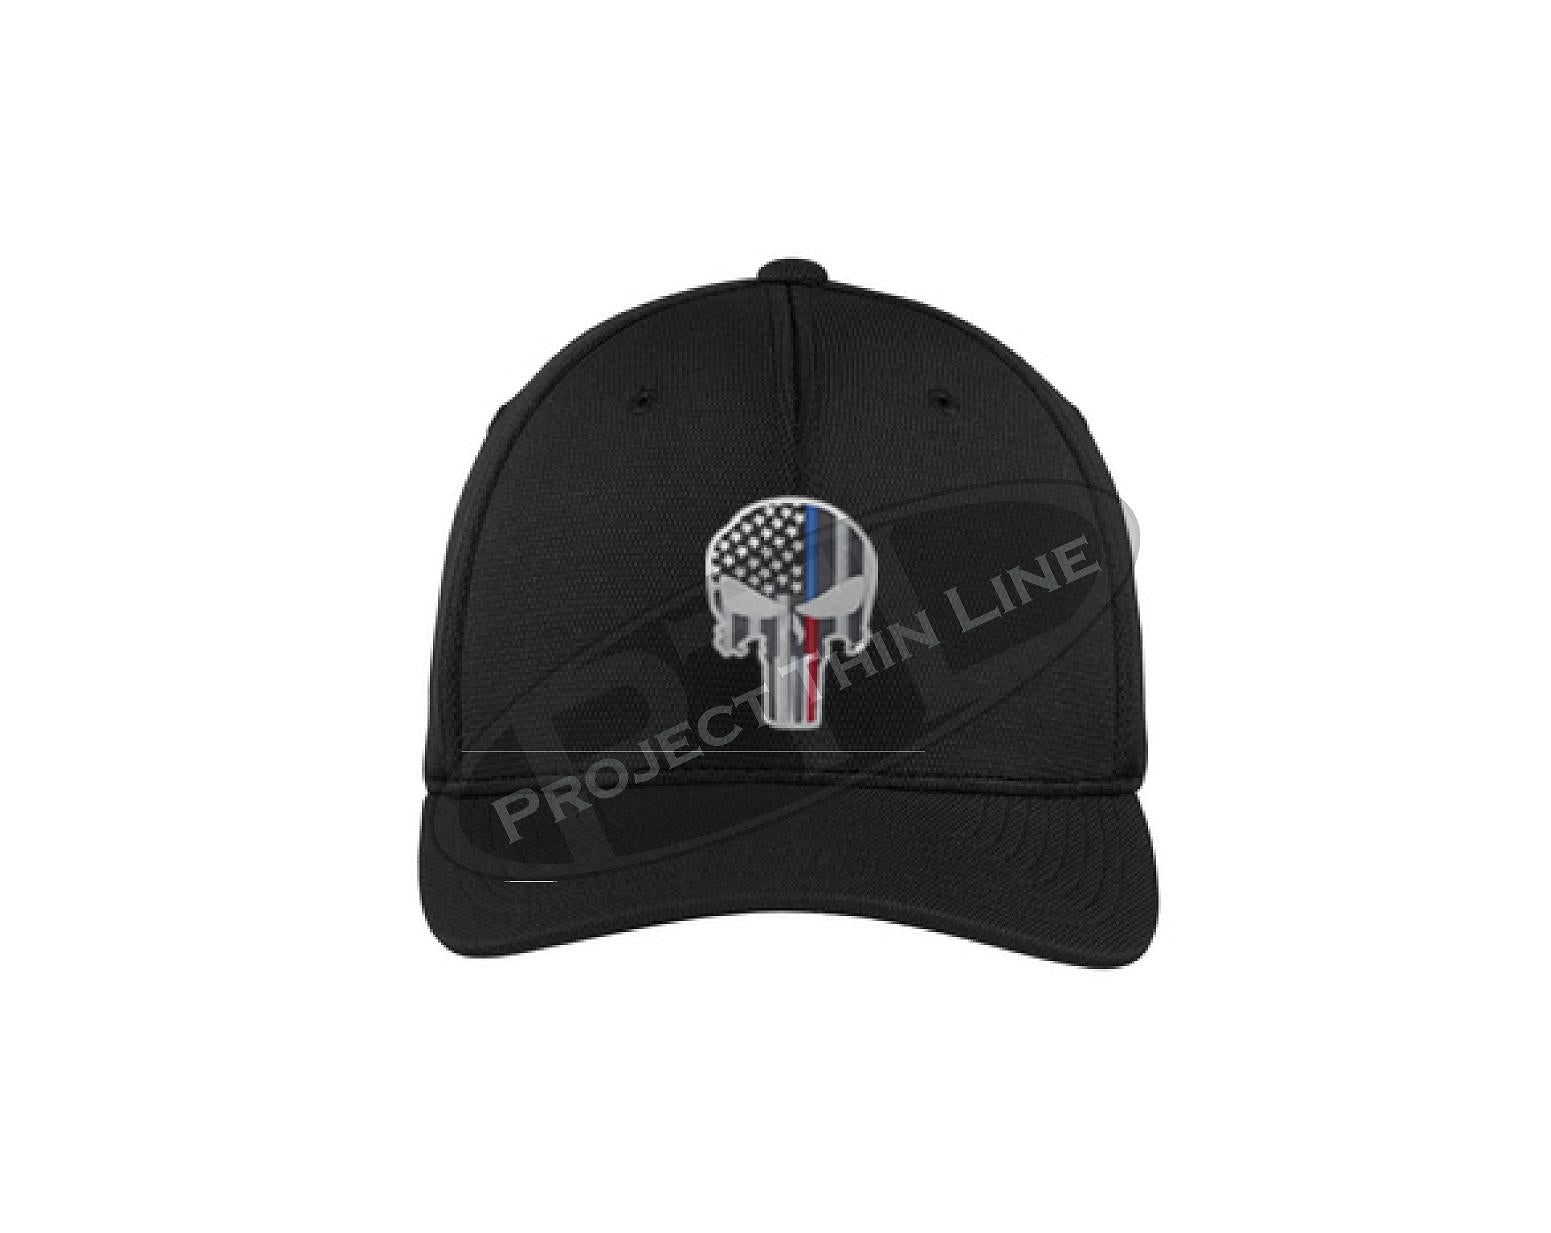 3077fac0 Embroidered Thin Blue / Red Line Punisher Skull with American Flag Flex Fit  TRUCKER Hat fitted